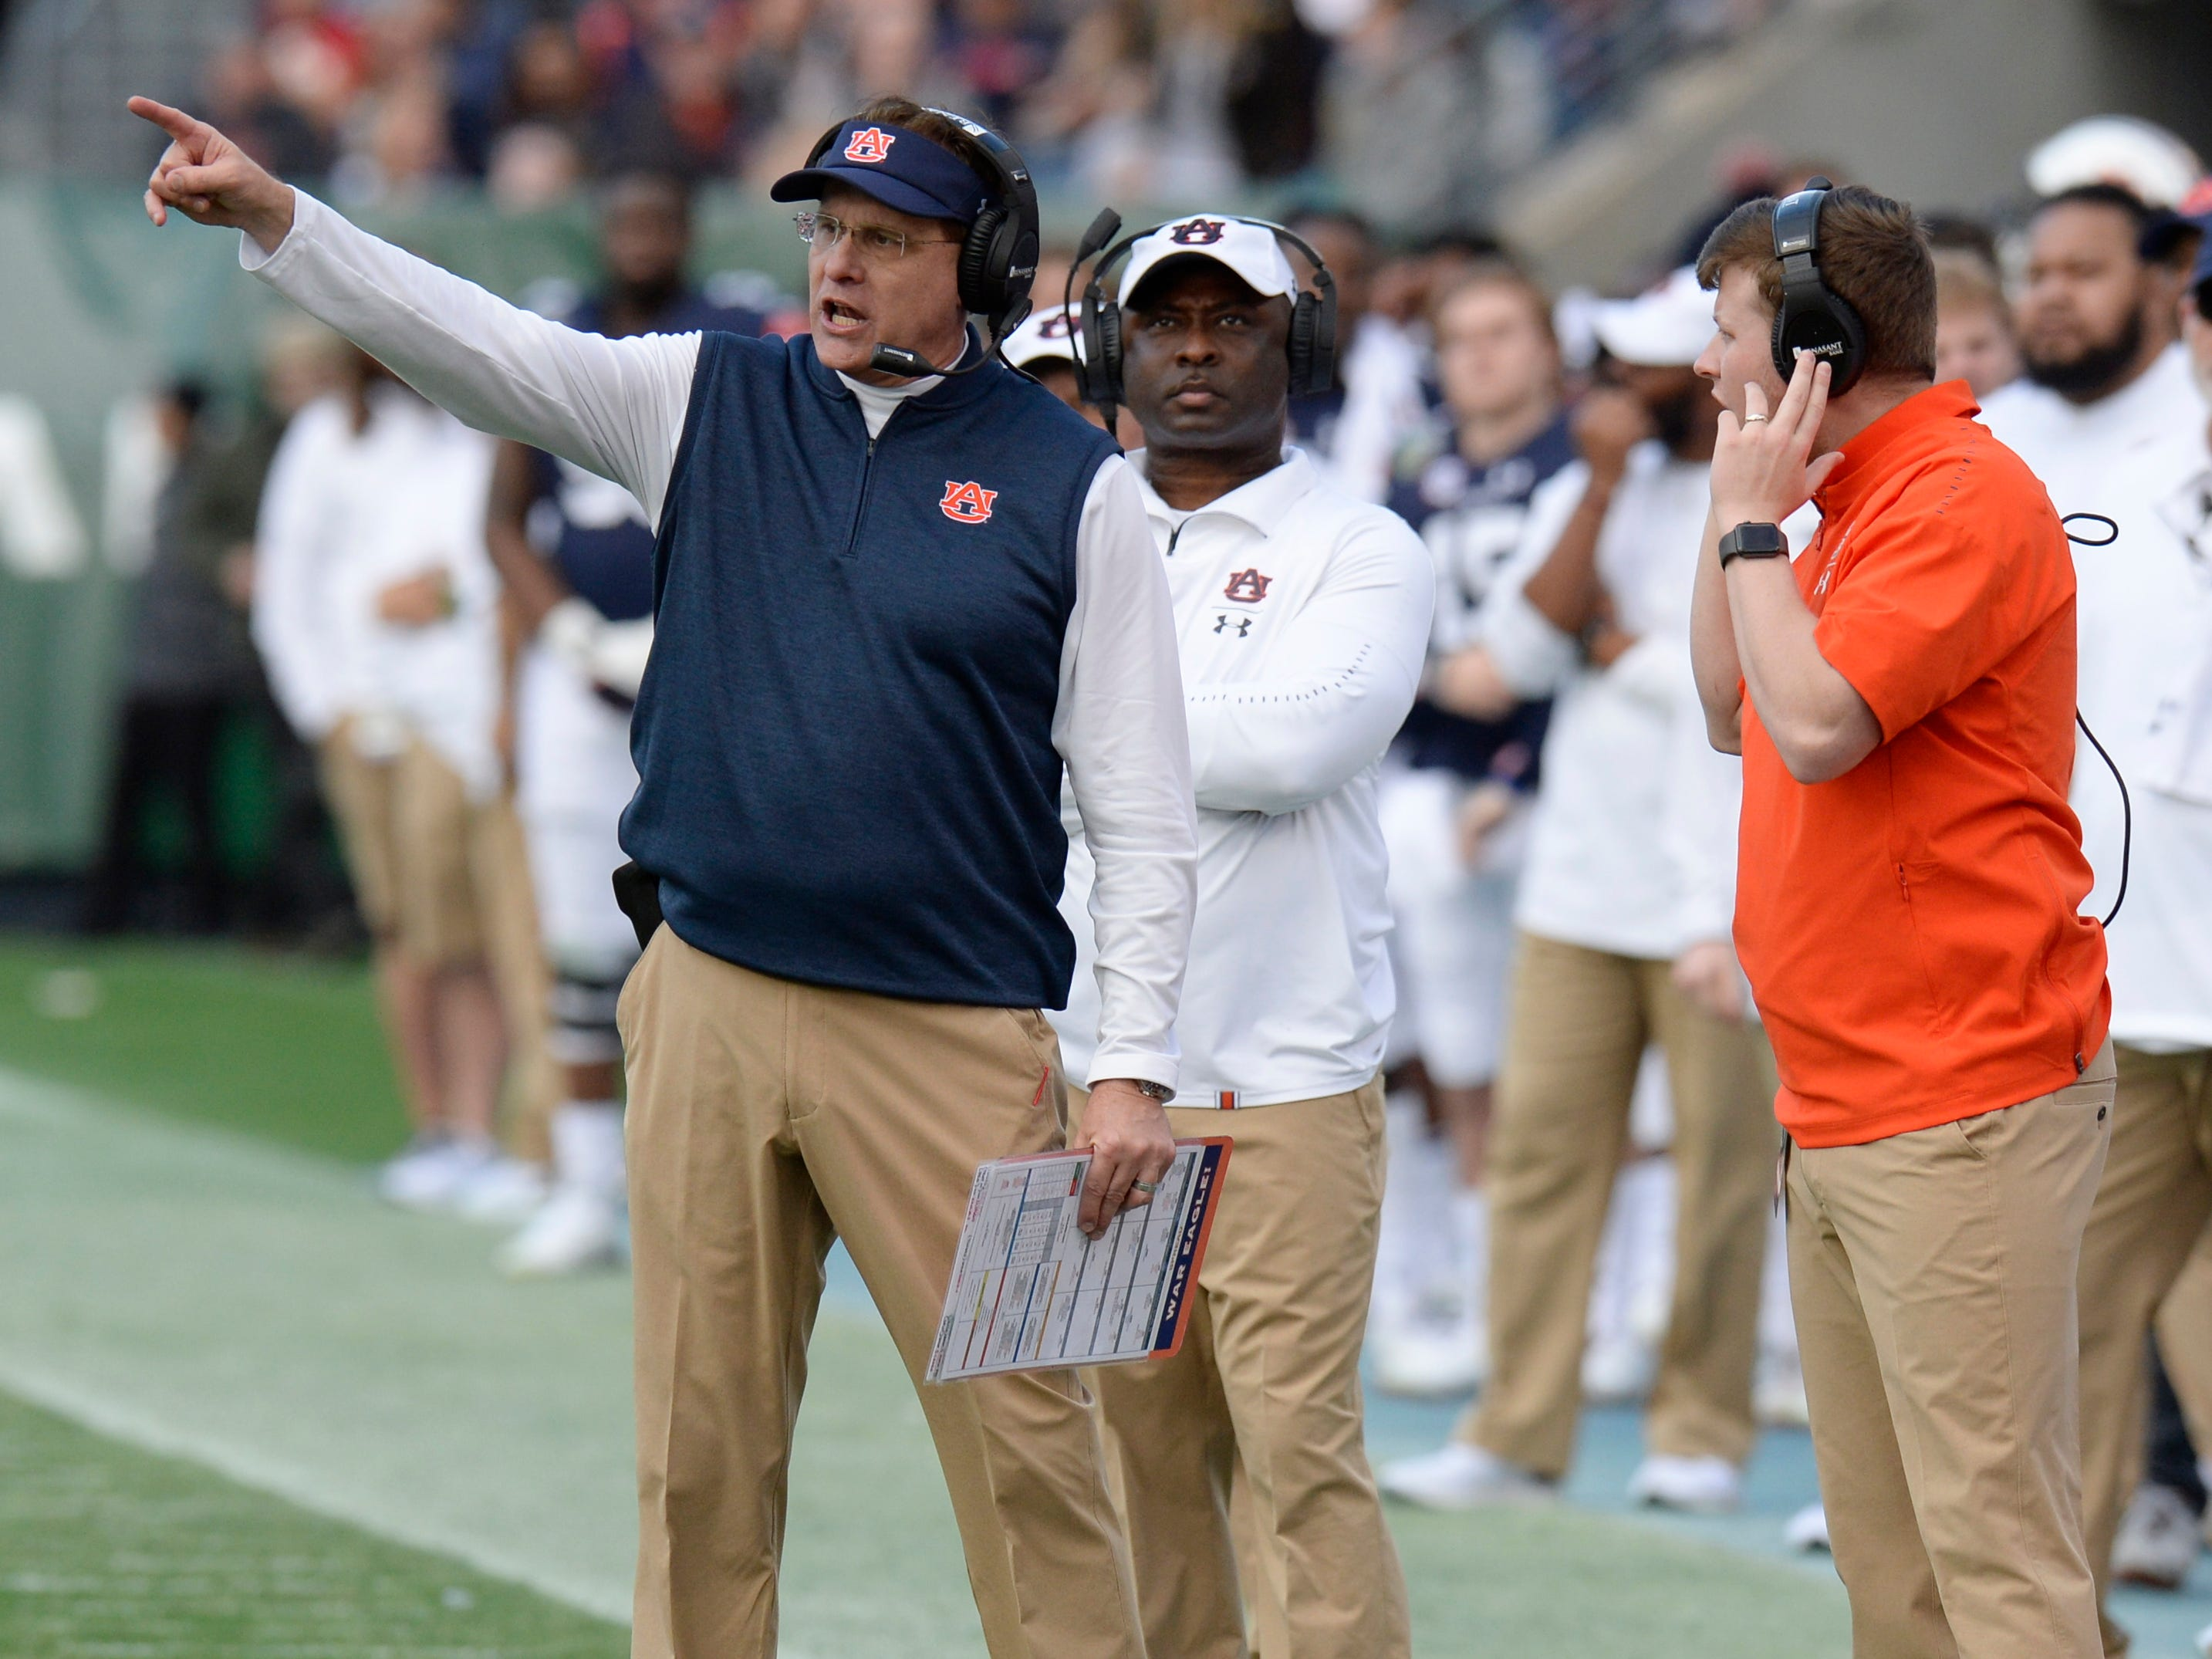 Auburn head coach Gus Malzahn gives directions from the sideline in the second quarter of the Music City Bowl NCAA college football game Friday, Dec. 28, 2018, at Nissan Stadium in Nashville, Tenn.